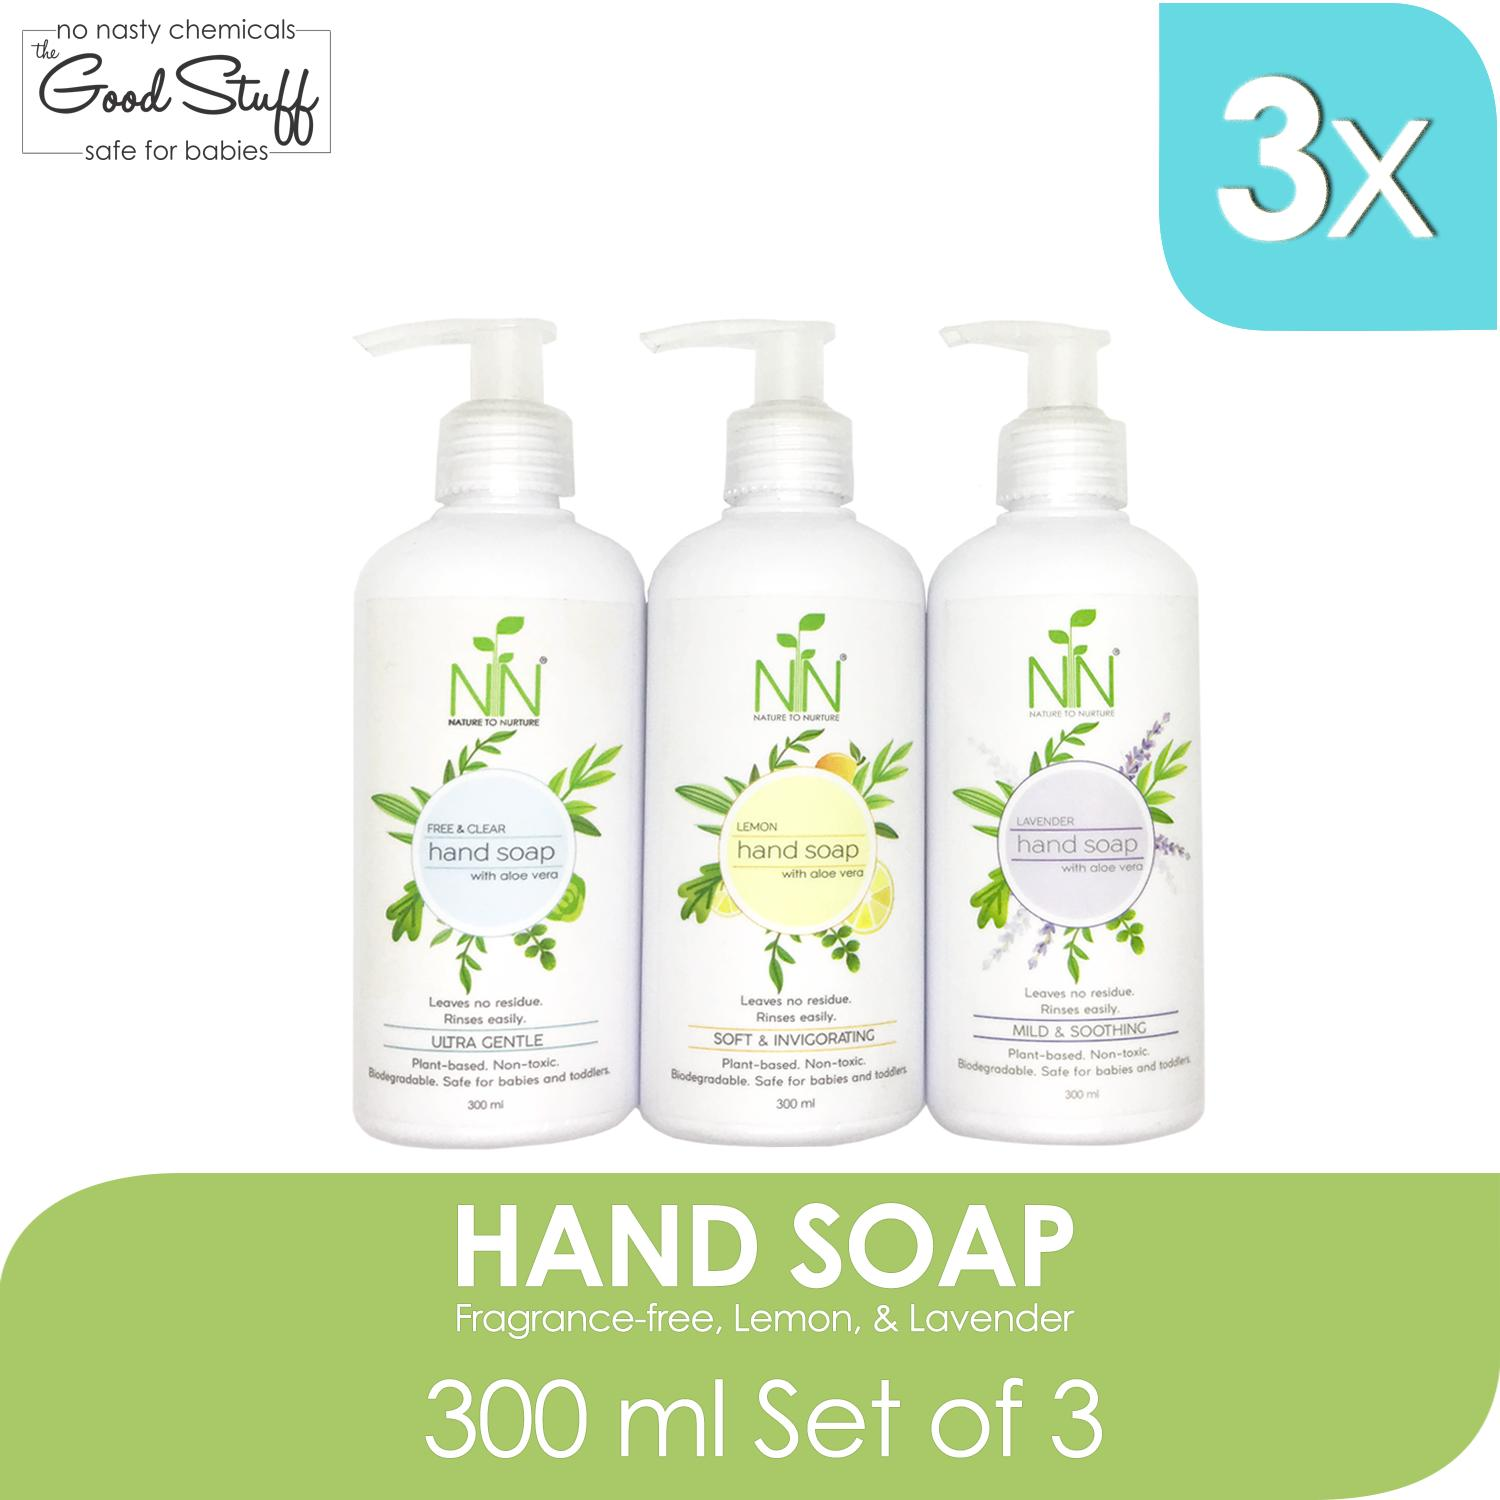 Nature To Nurture Hand Soap With Aloe Vera 300ml Set Of 3 (free & Clear, Lavender, Lemon) By Nature To Nurture.